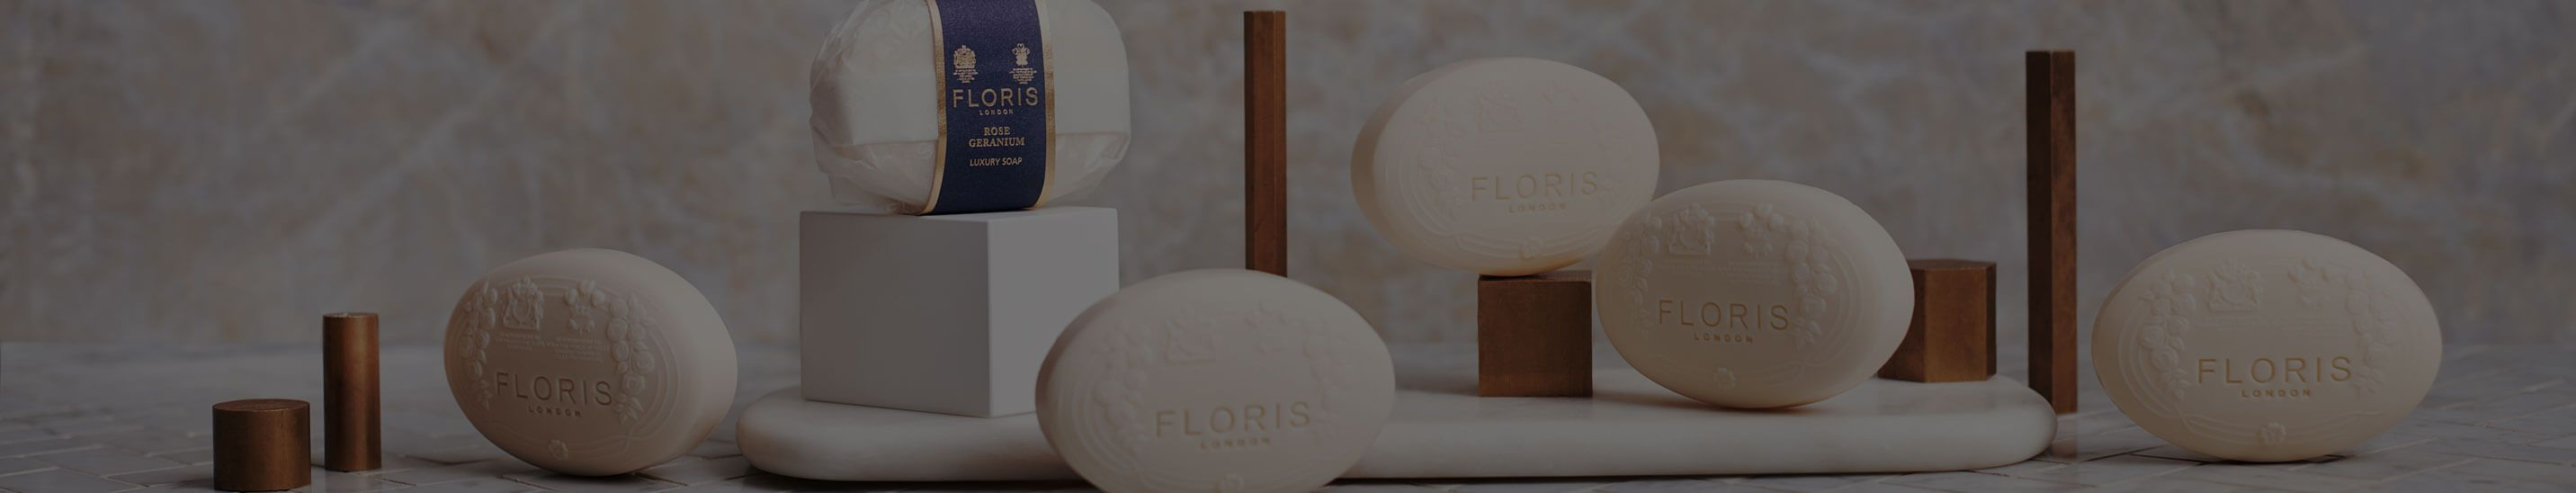 Floris-London-Bath-and-Body-Collection-Mobile.jpg